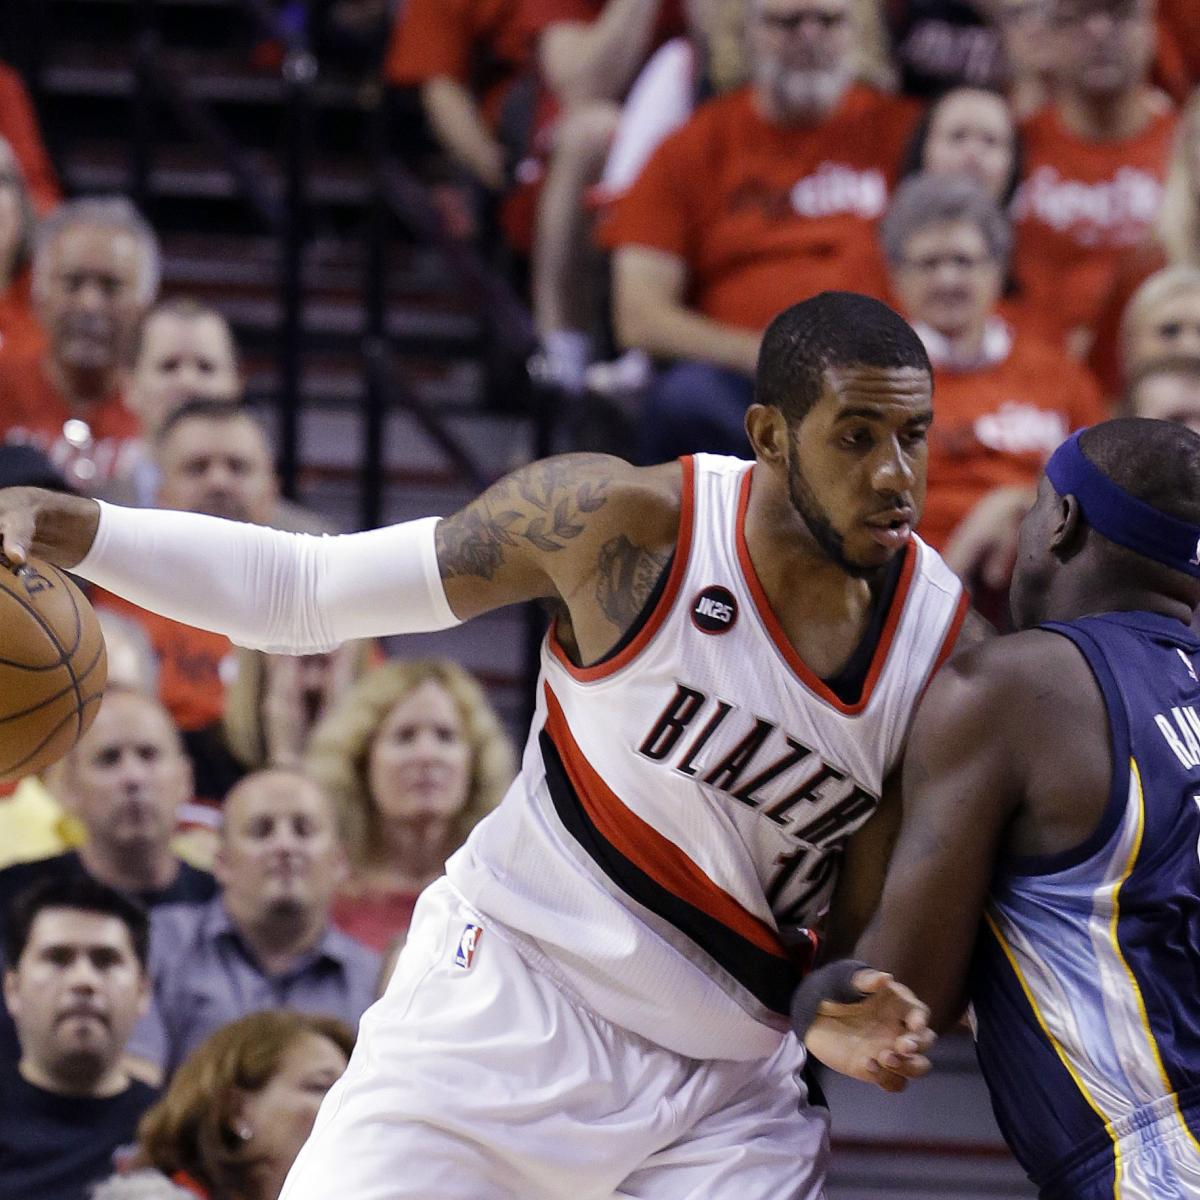 Portland Blazers Number 30: Buying Or Selling Latest Portland Trail Blazers Rumors In